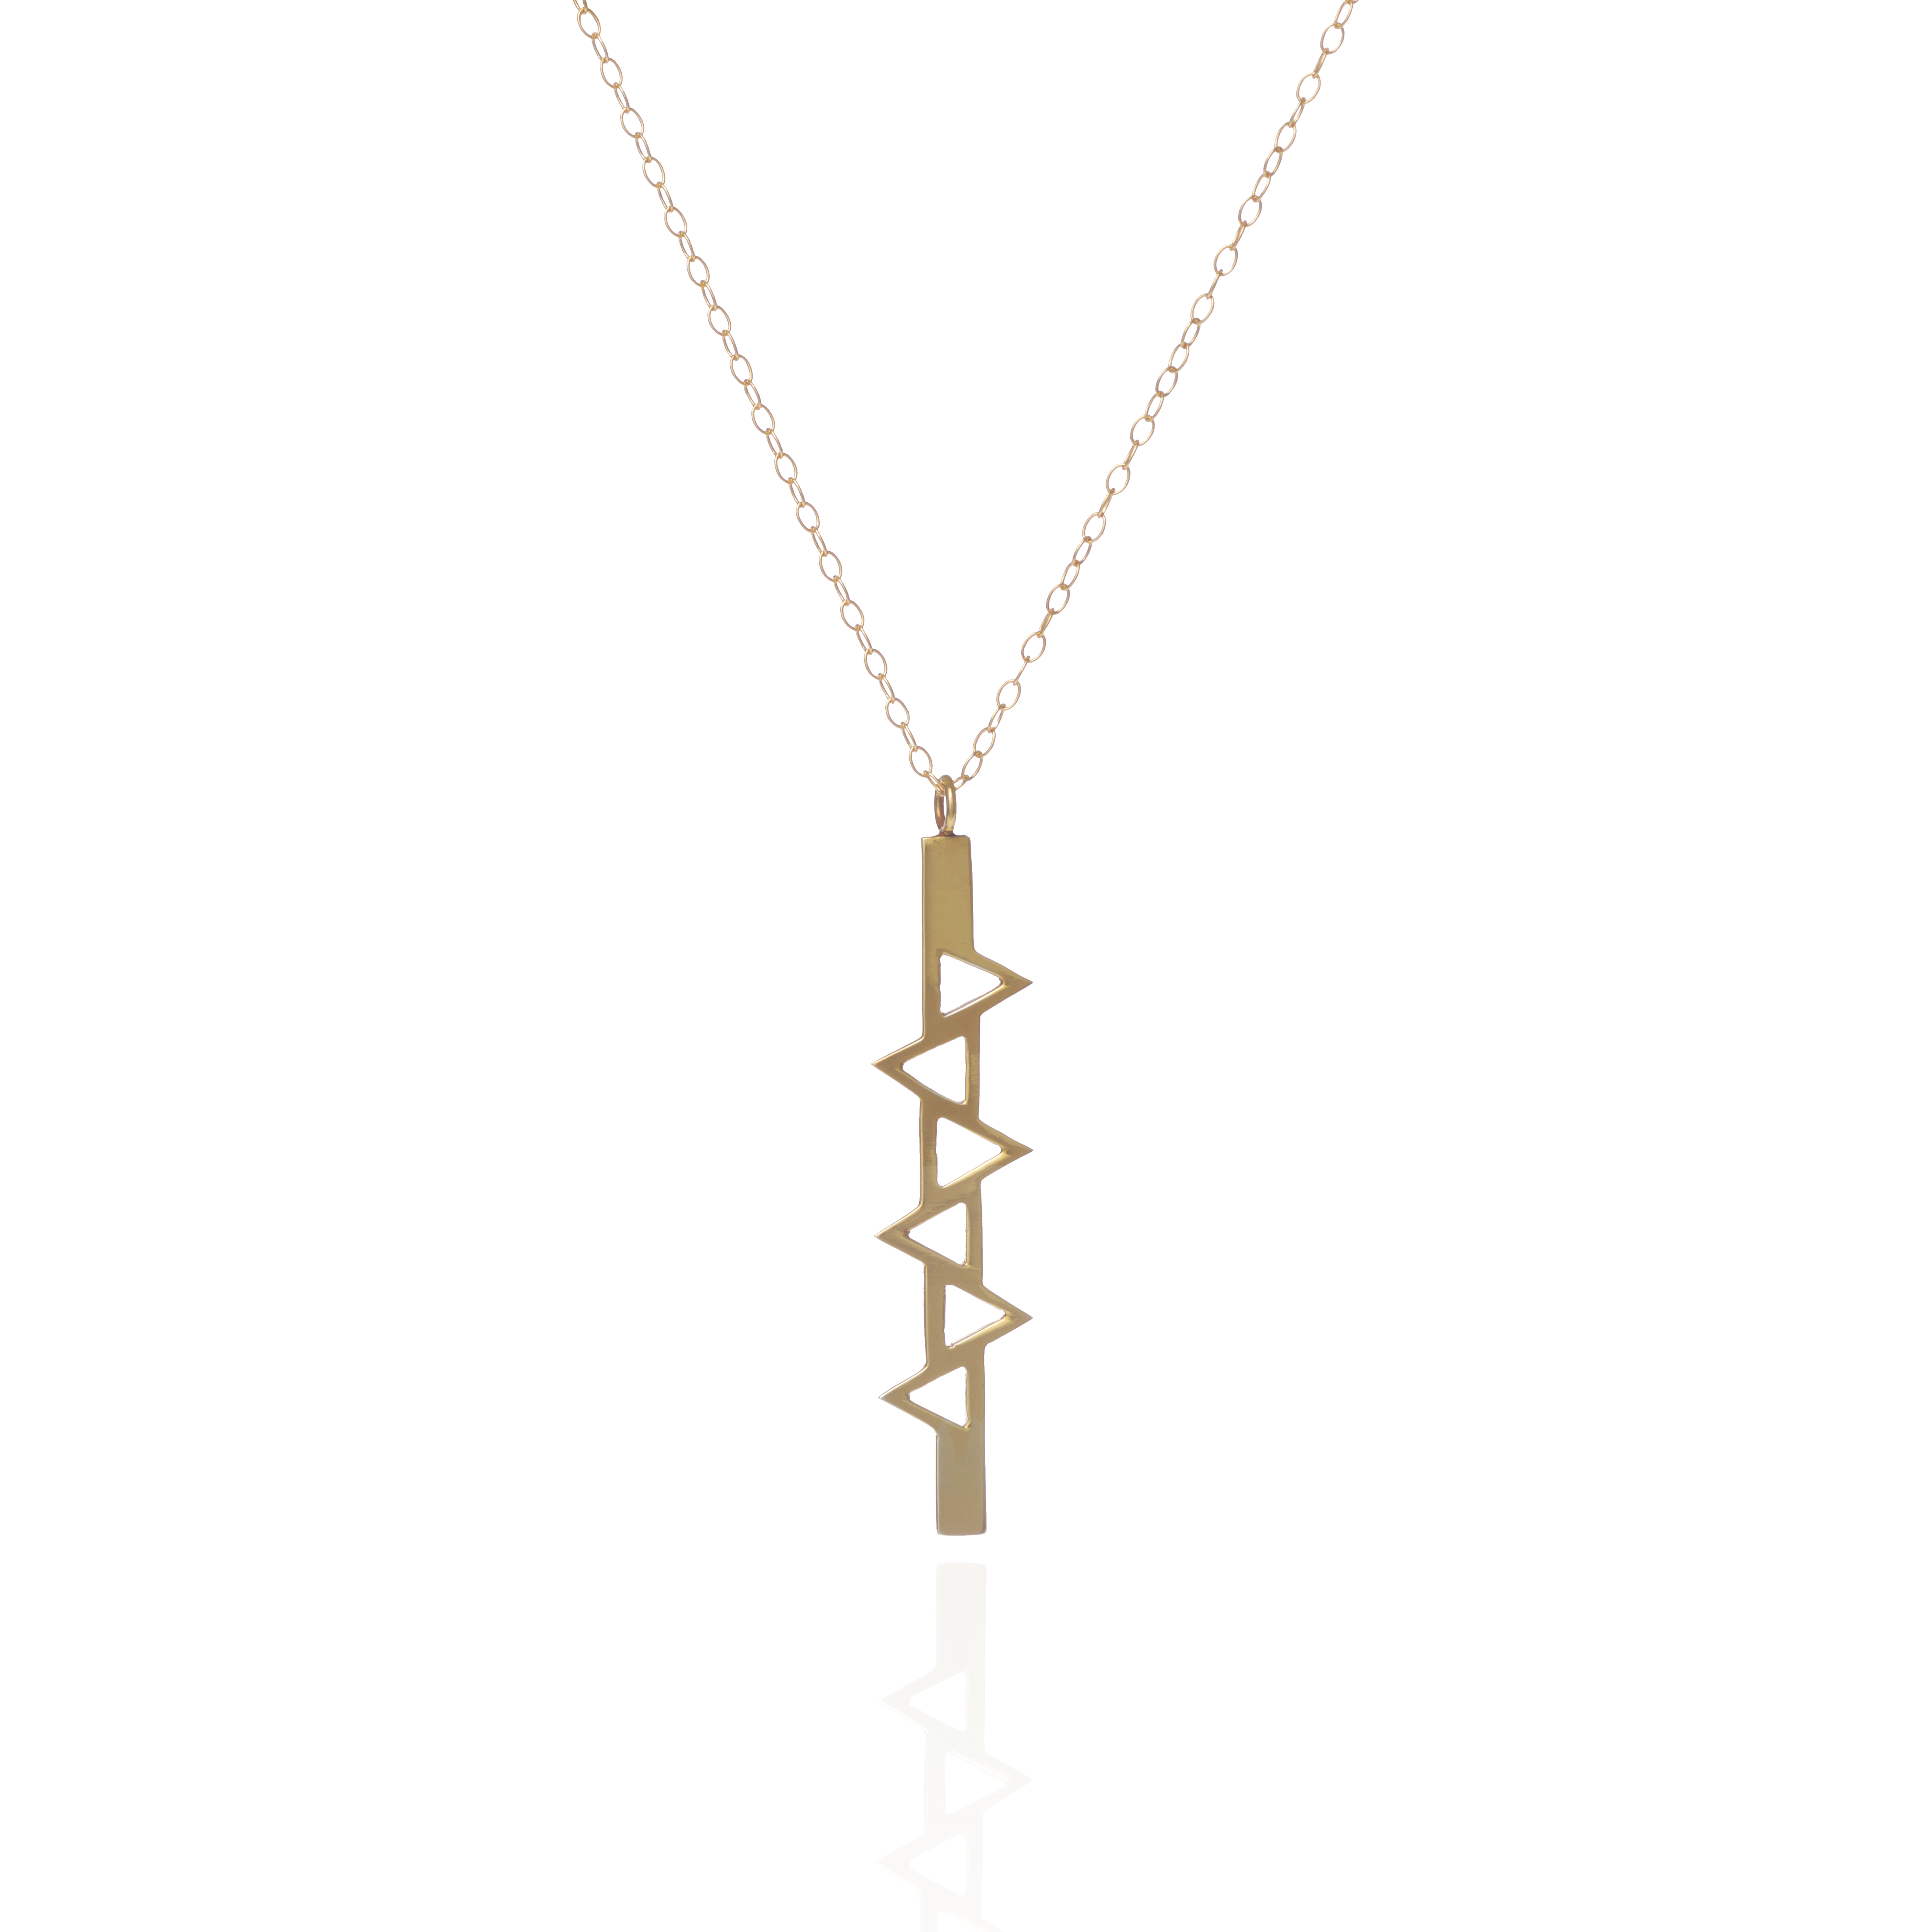 Ladder of Life, Long Gold Pendant by Sally Lane Jewellery on curated-crowd.com